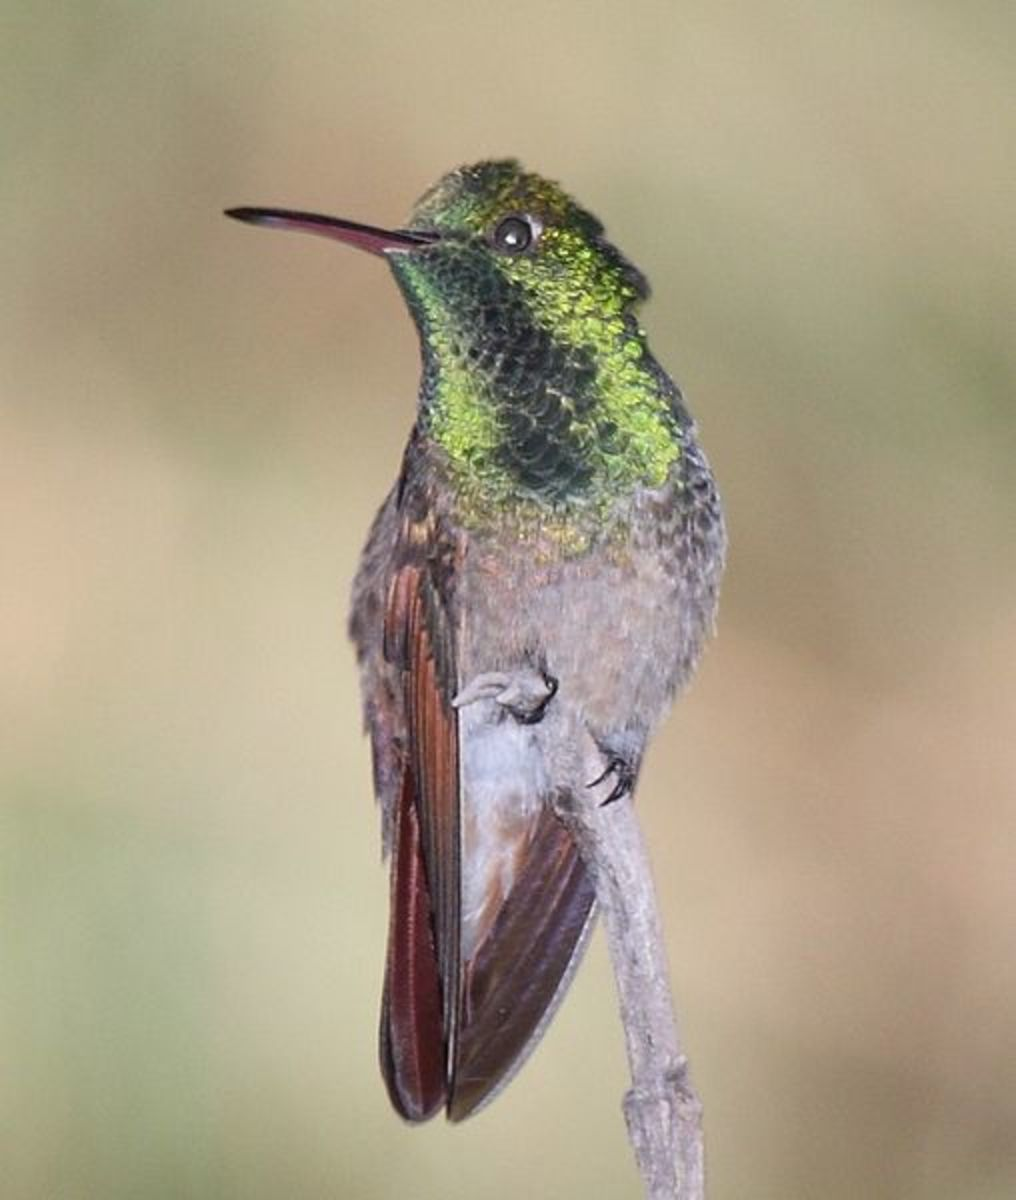 Different species of hummingbirds: Berylline hummingbird